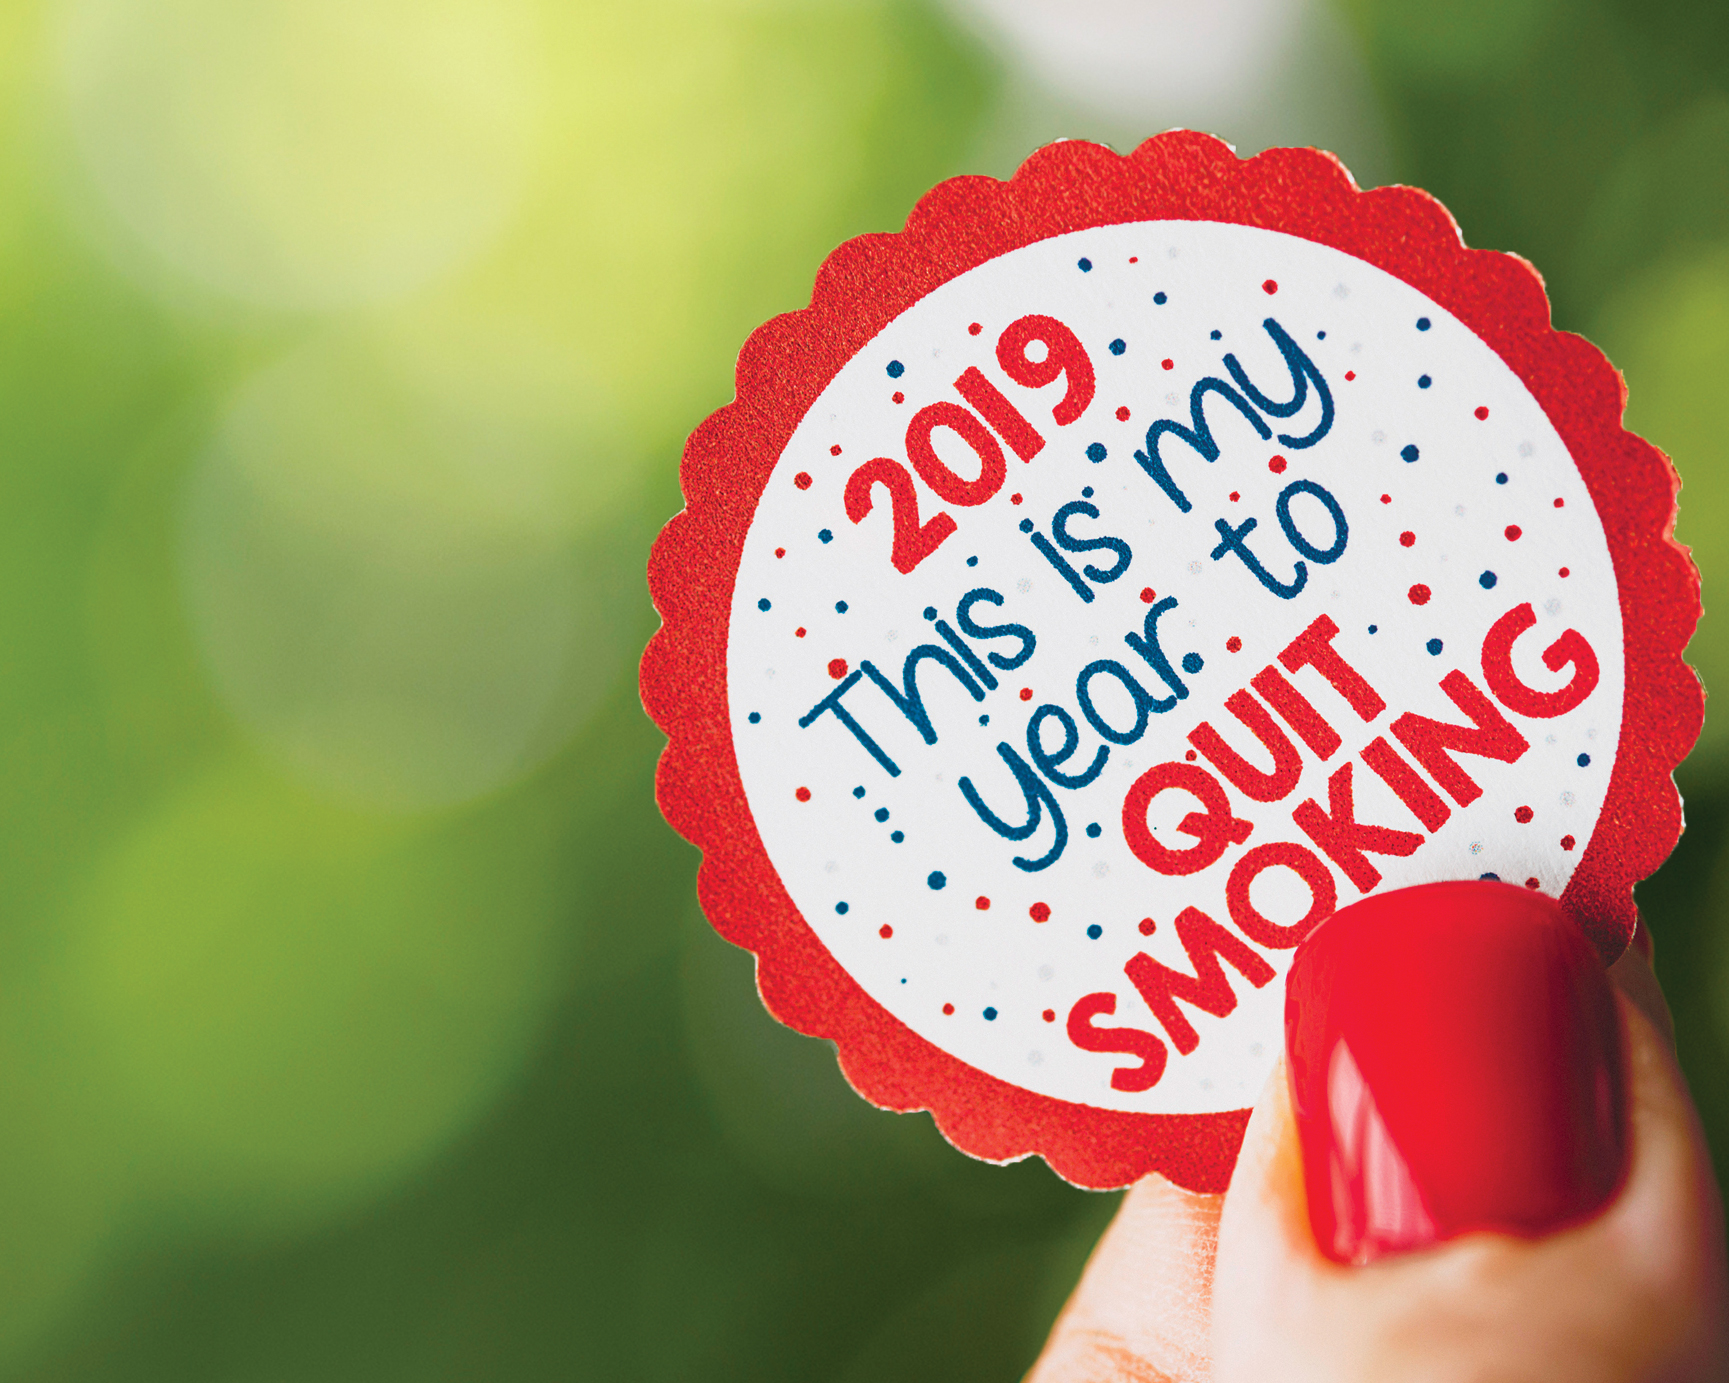 Quit Smoking and Make This Your Best Year Yet